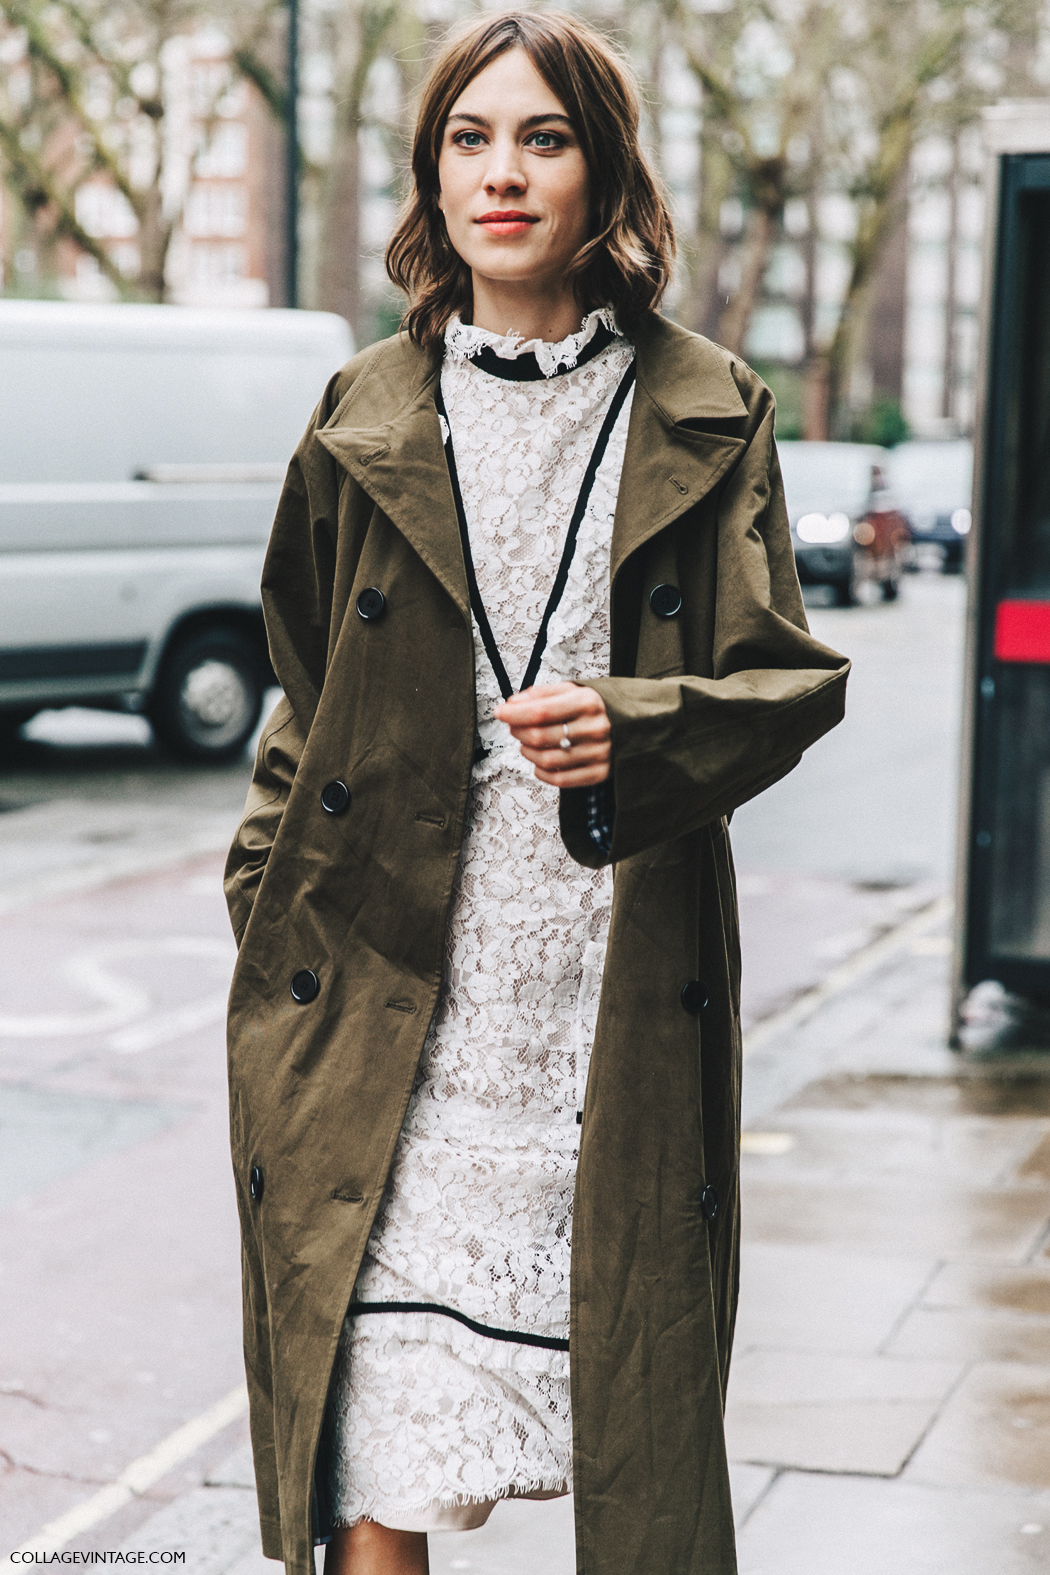 LFW-London_Fashion_Week_Fall_16-Street_Style-Collage_Vintage-Alexa_Chung-Trench_Coat-Cowboy_Boots-Erdem-Lace_Dress-9